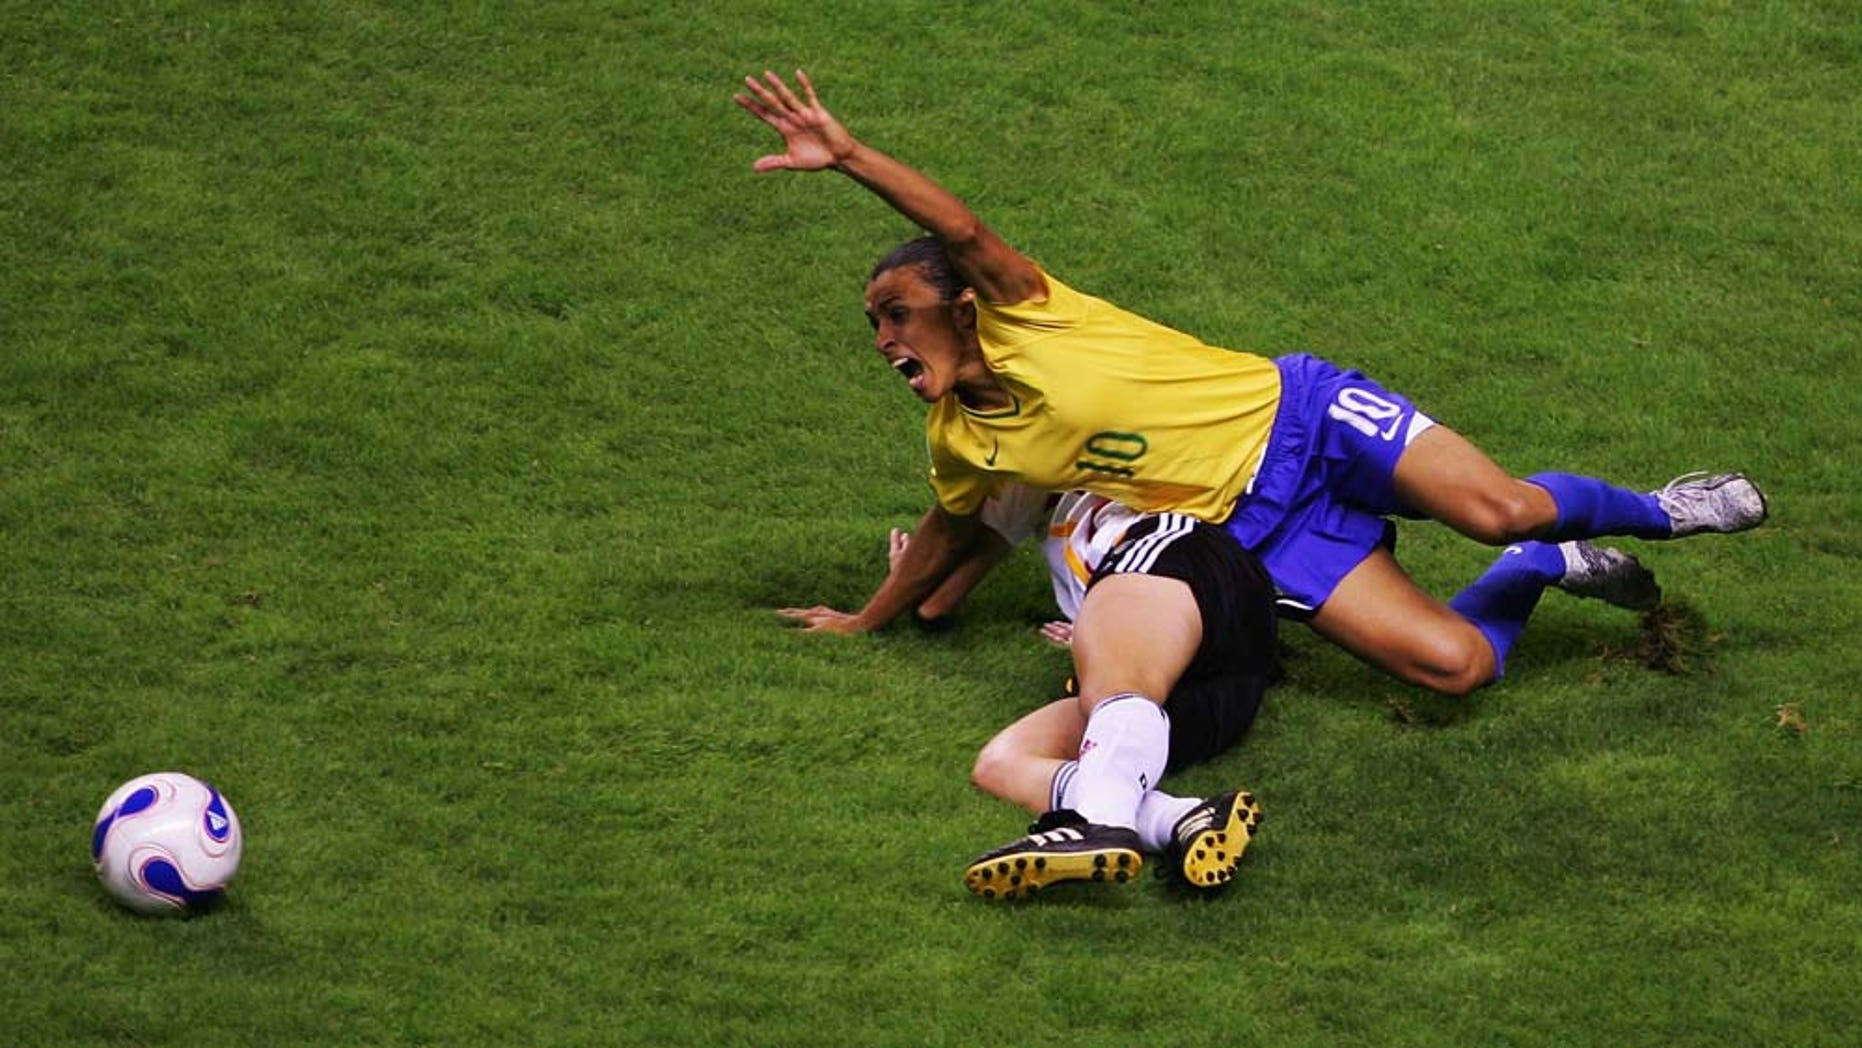 SHANGHAI, CHINA - SEPTEMBER 30: Marta (#10) of Brazil in action during the Women's World Cup 2007 final between Germany and Brazil at Shanghai Hongkou Football Stadium on September 30, 2007 in Shanghai, China. (Photo by Guang Niu/Getty Images)